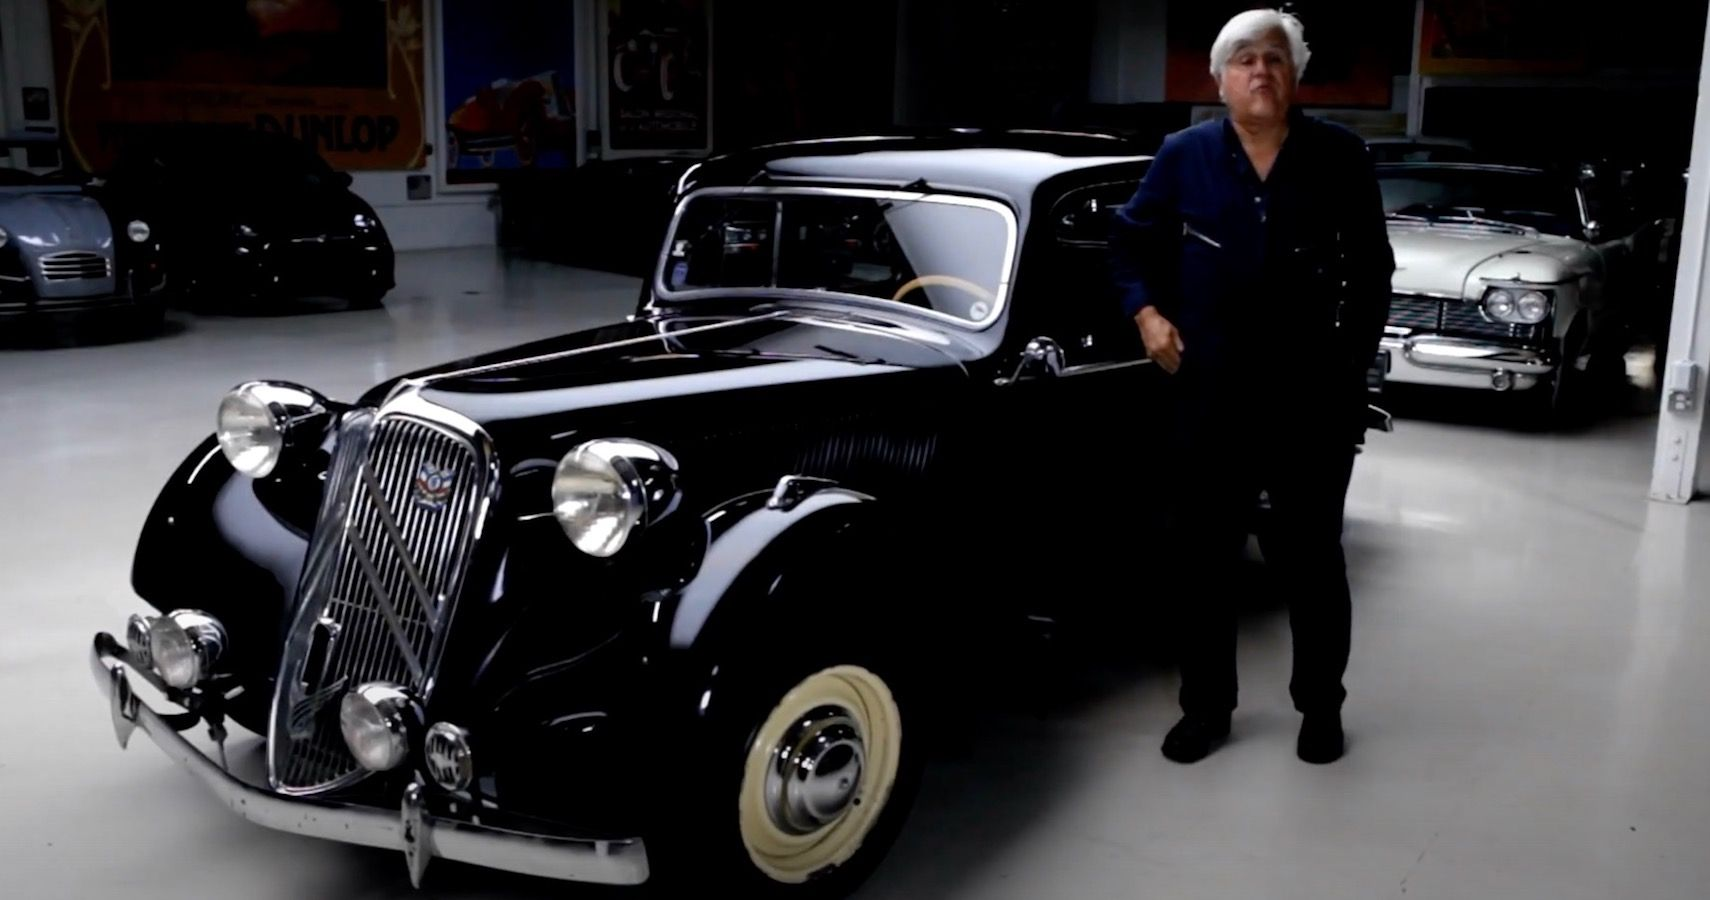 Jay Leno's Garage Highlights Classic '49 Citroen Wildly Advanced For Its Time